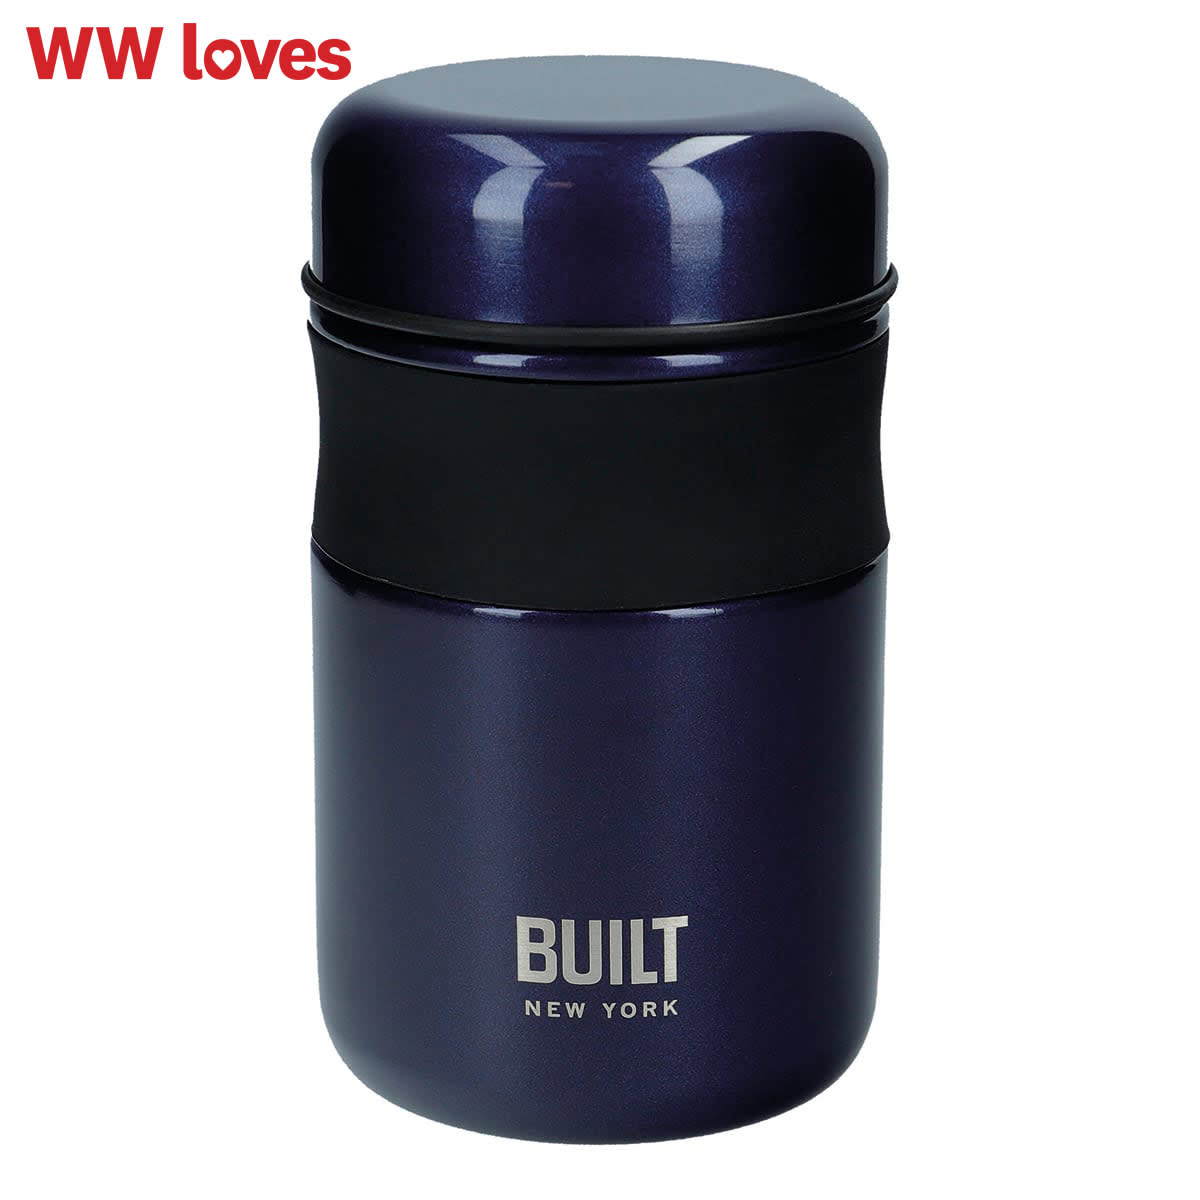 Built 490ml Food Flask, colour rose gold, reusable food flask, leaf proof, BPA free, PVC free, Phthalates Free, 9cm x 15.5cm, keeps food hot for 6 hours and chilled for 24 hours